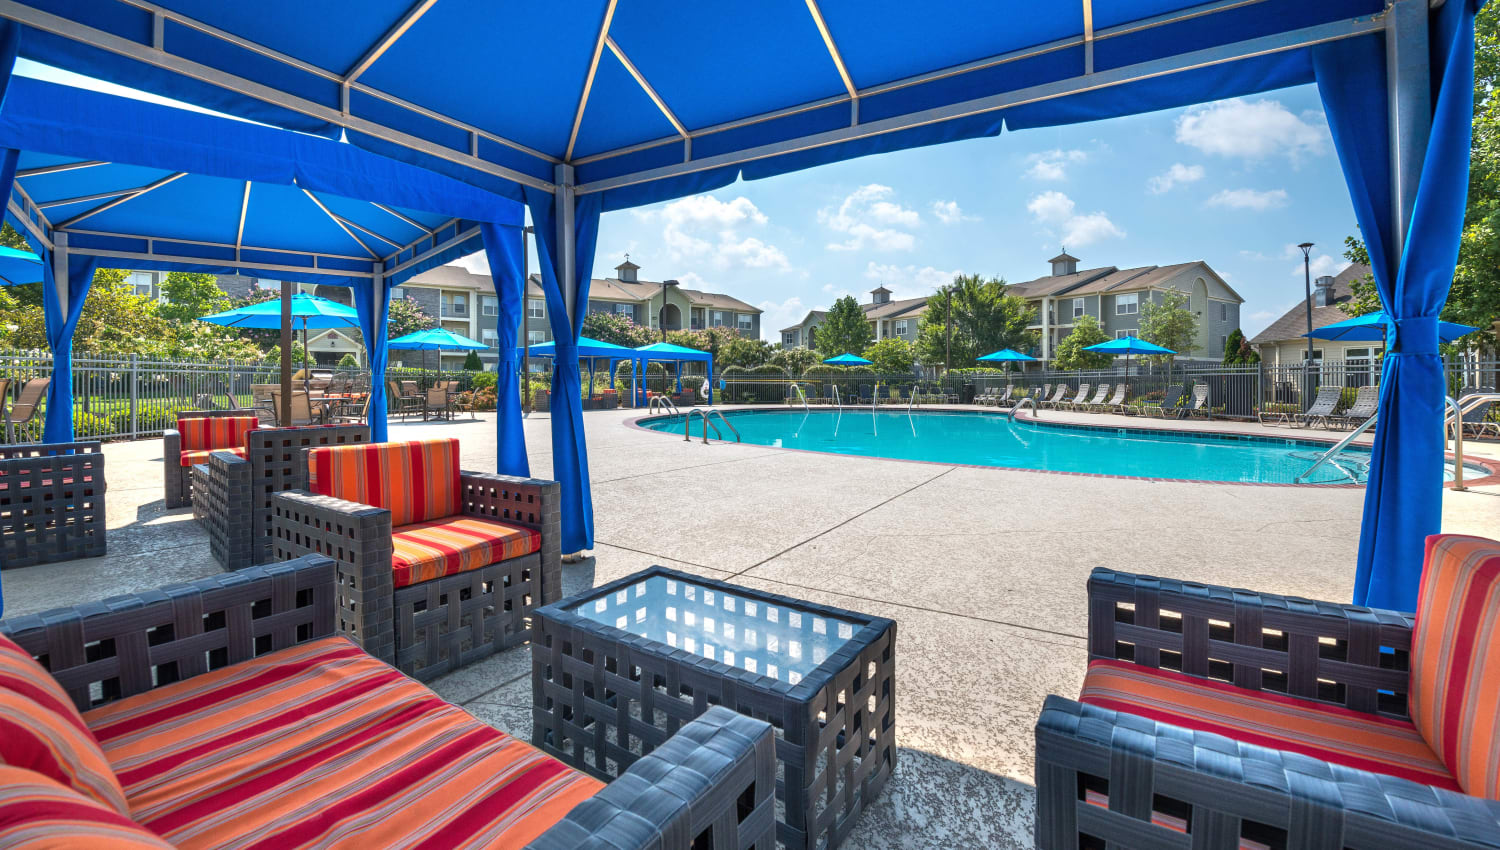 Comfortable poolside seating at Olympus Hillwood in Murfreesboro, Tennessee